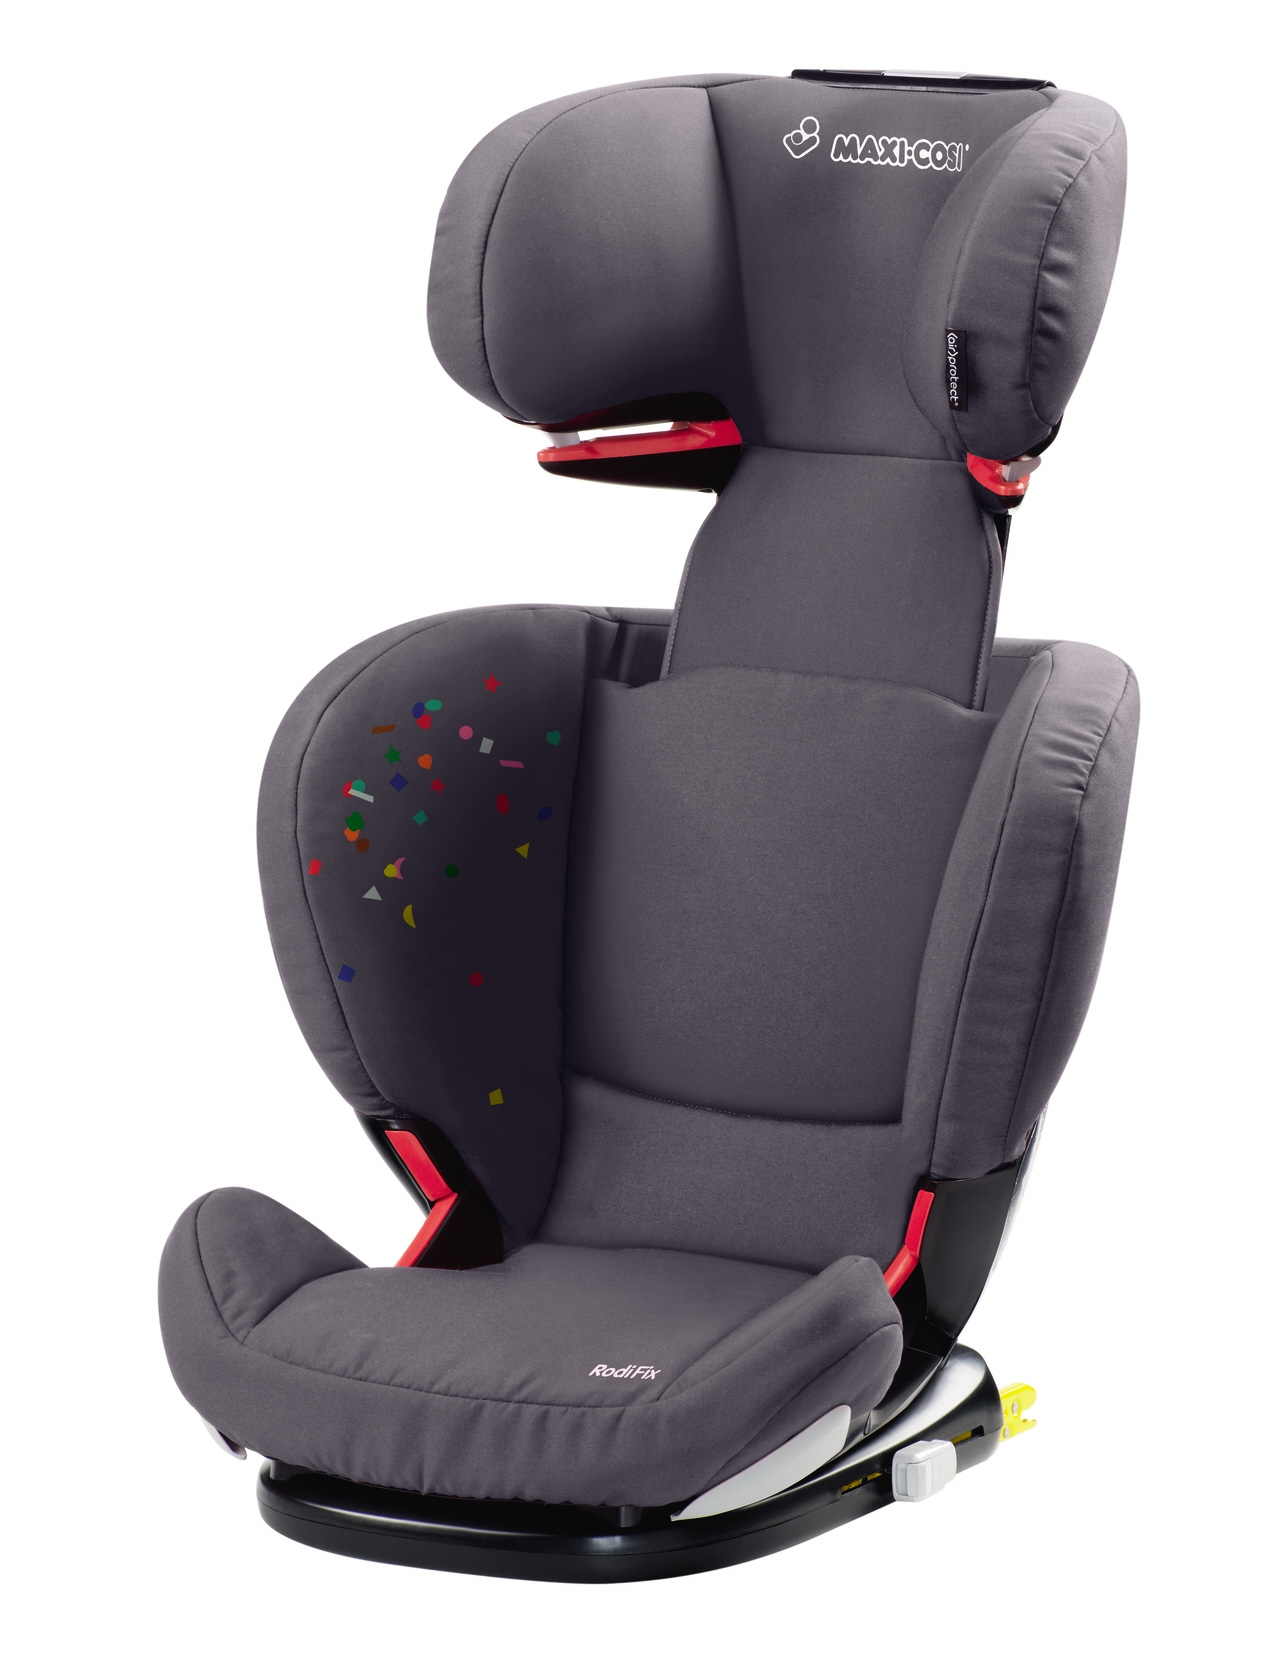 maxi cosi child car seat rodifix 2014 confetti buy at kidsroom car seats. Black Bedroom Furniture Sets. Home Design Ideas